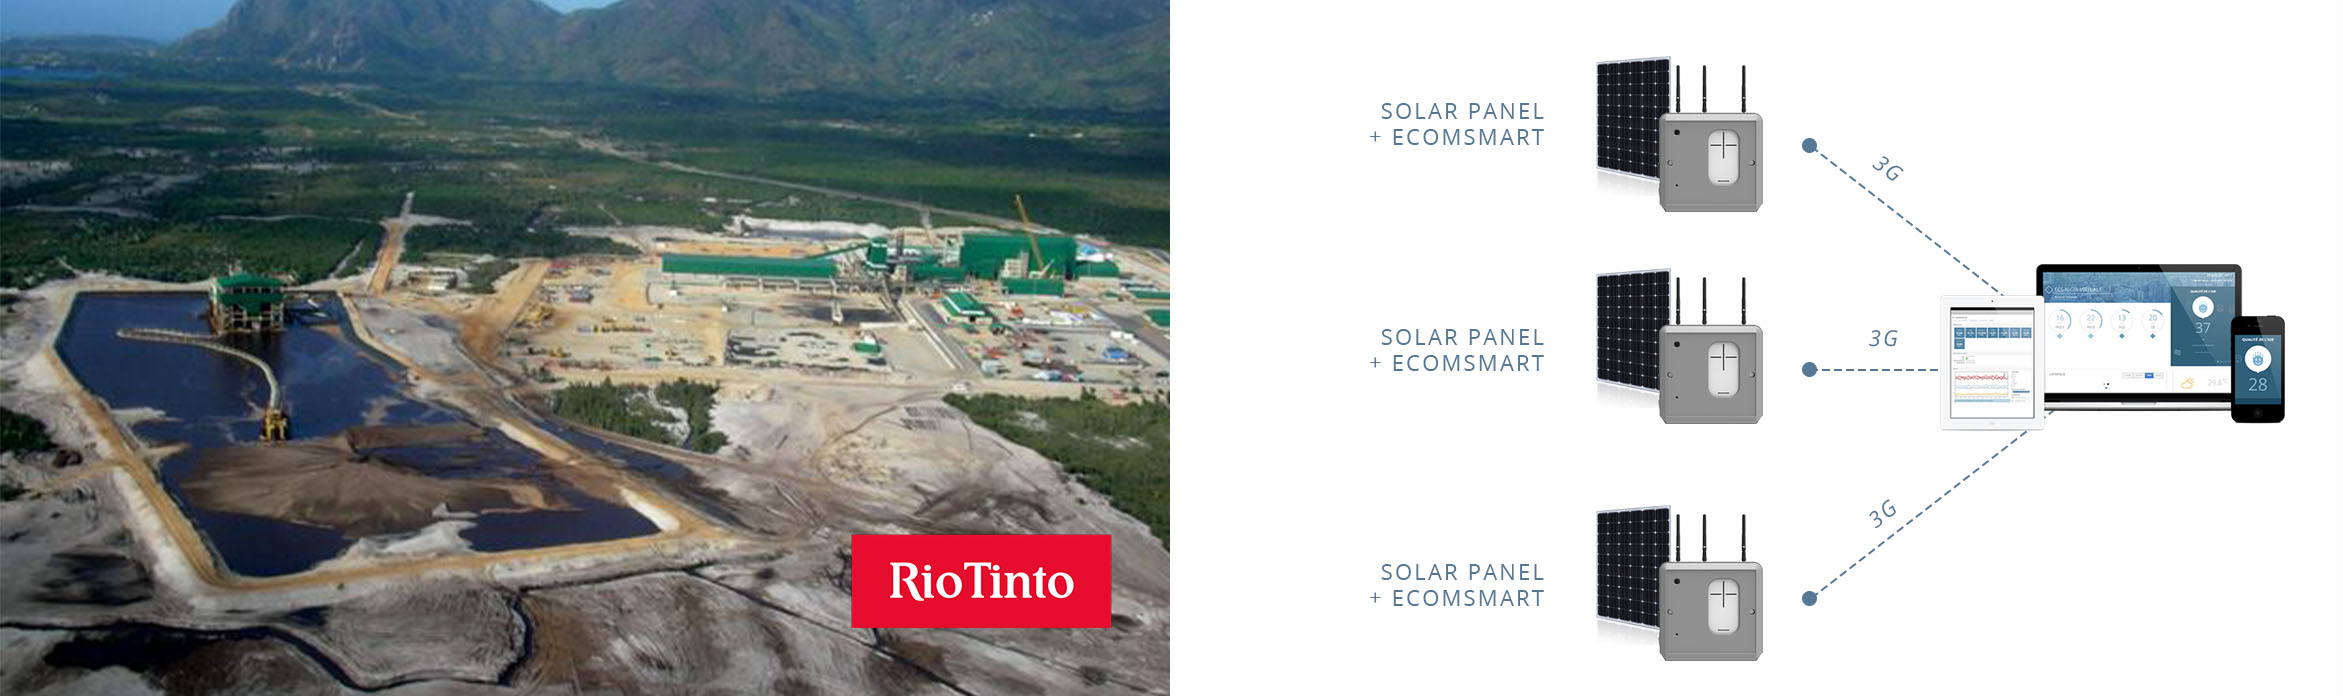 RioTinto Project